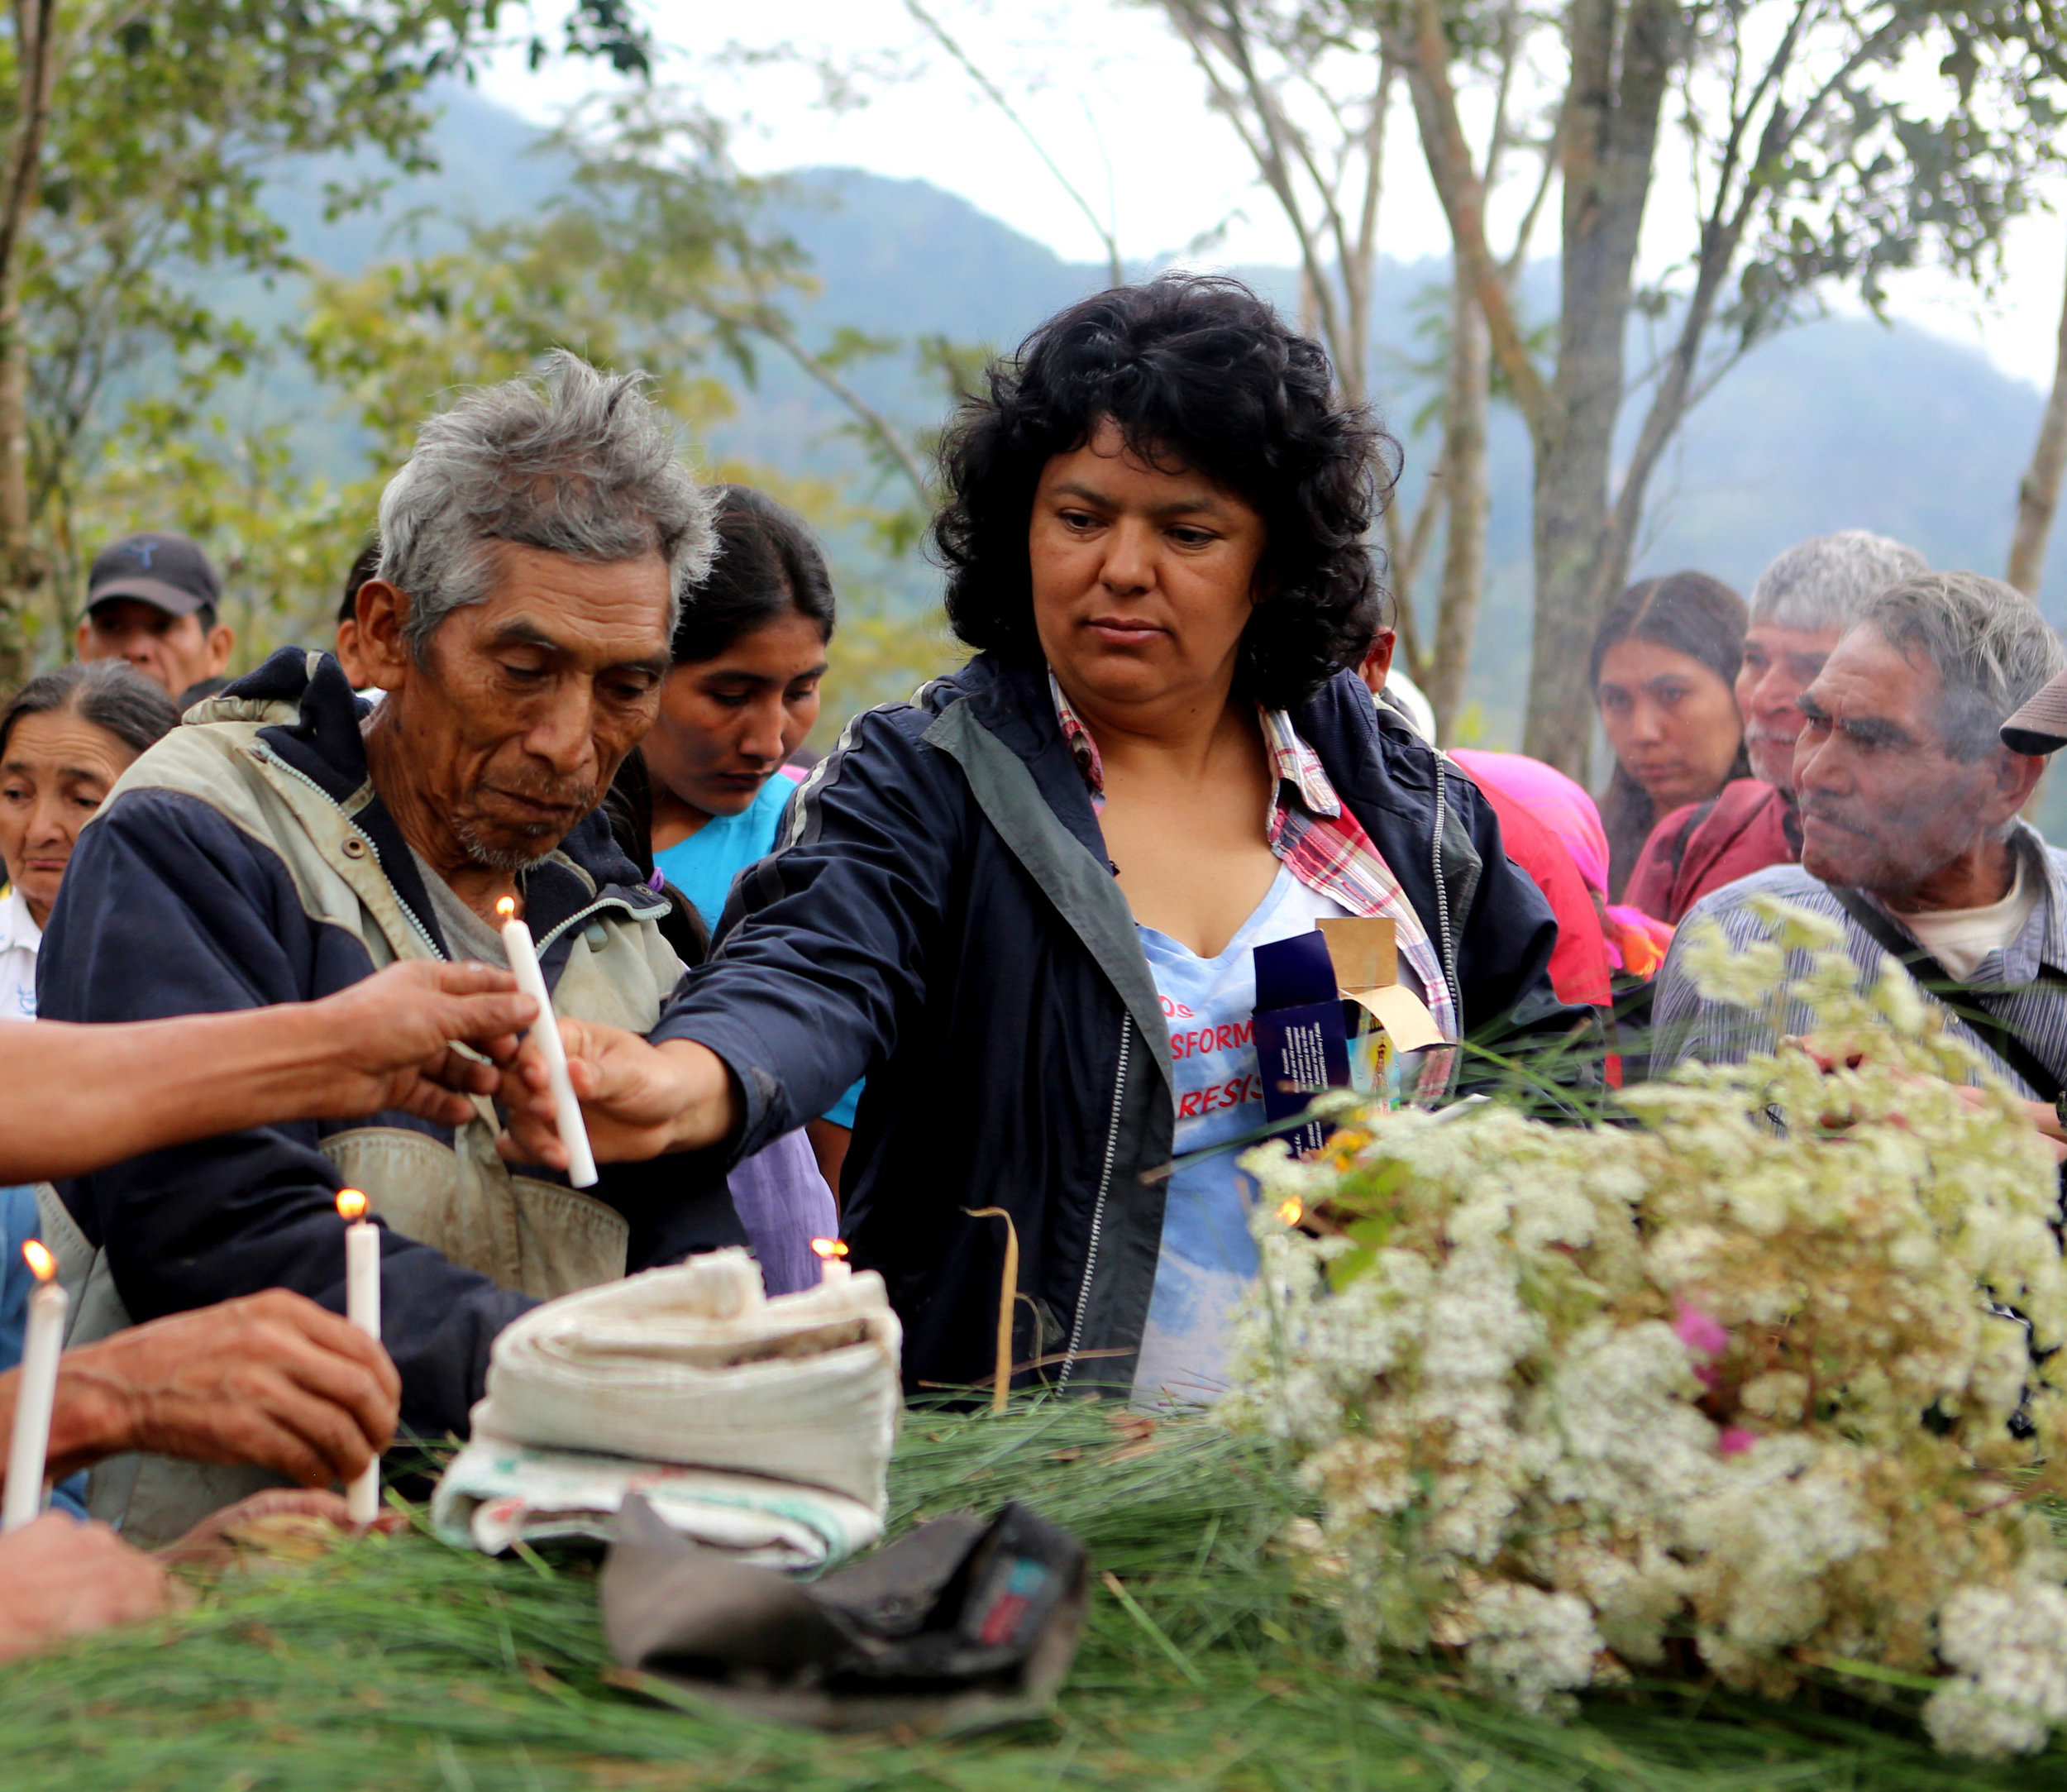 Berta Cáceres - World renowned environmental and indigEnous rights activist